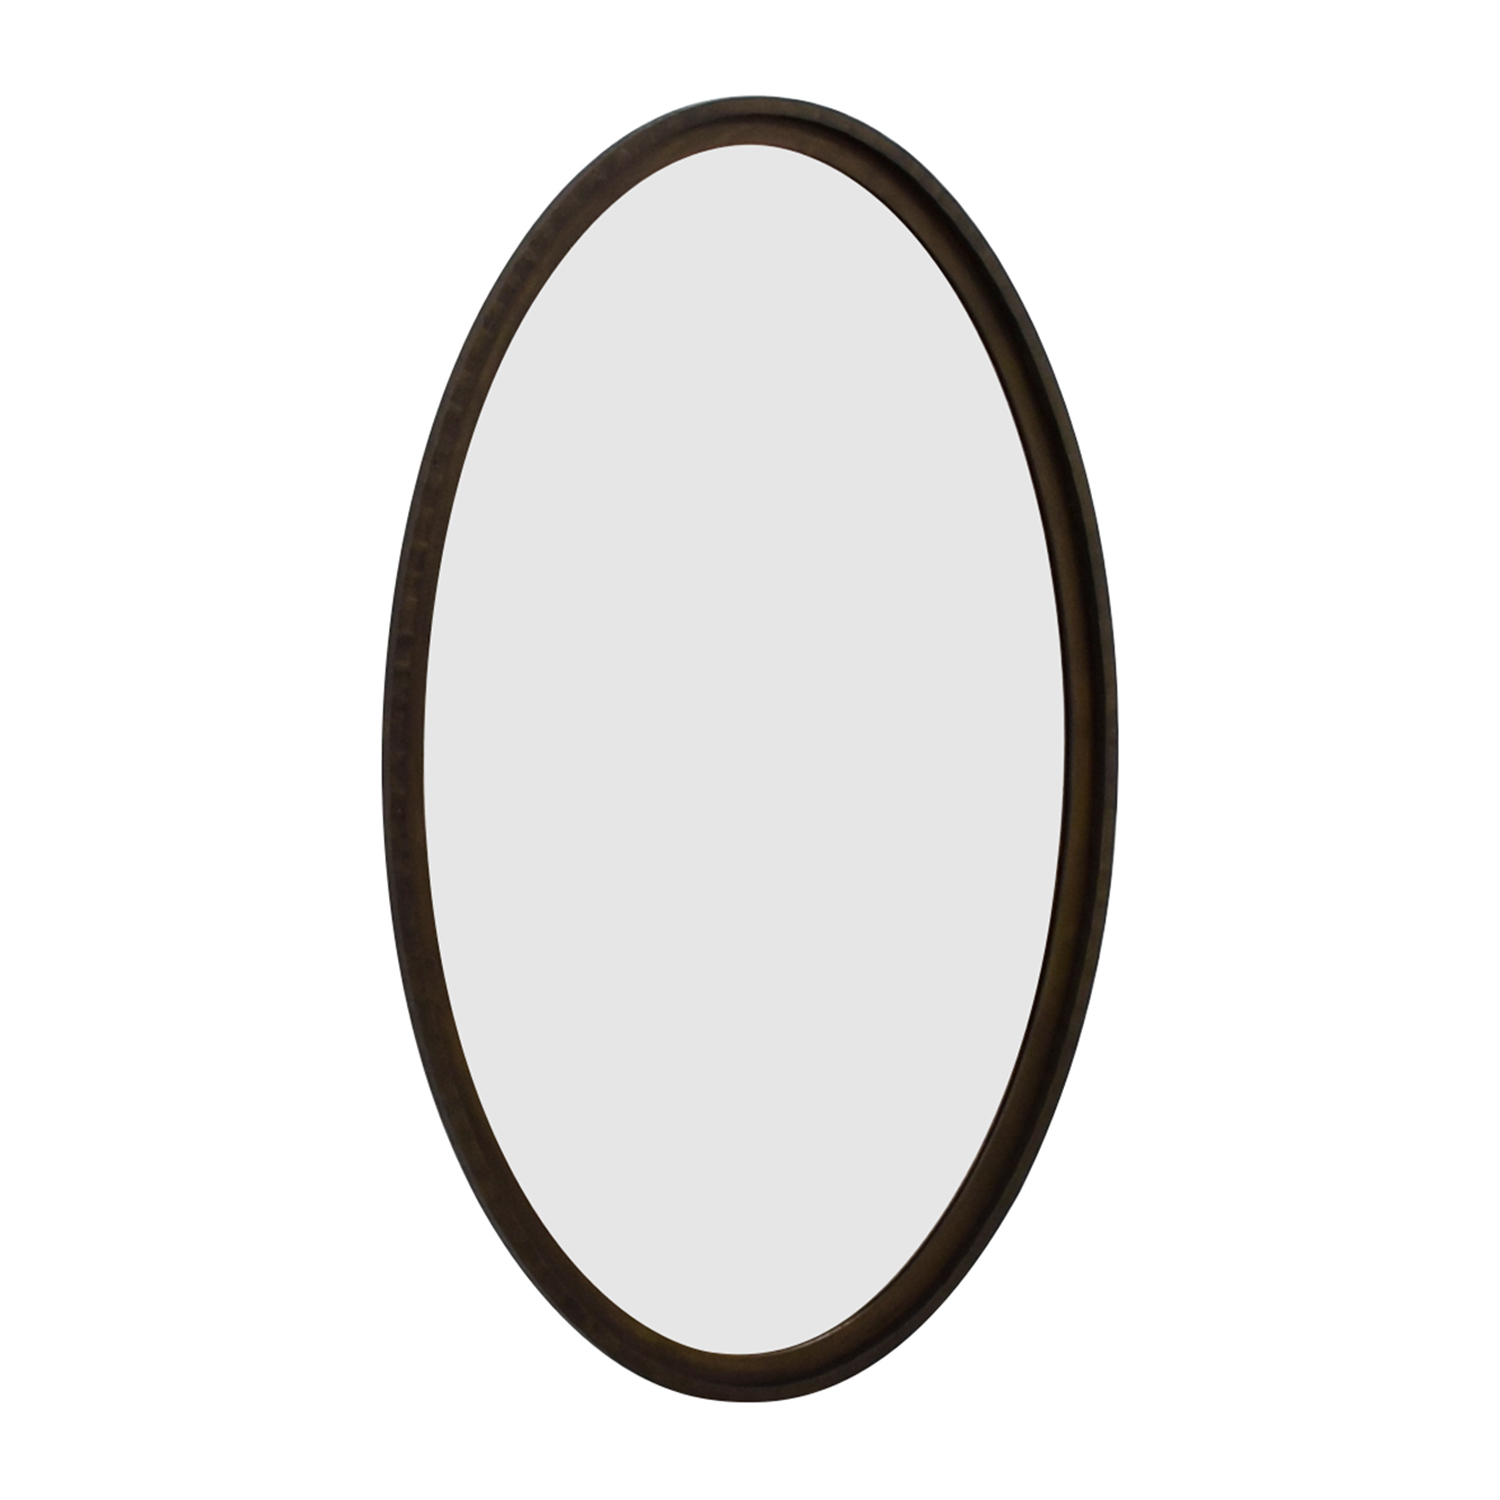 84% Off – Crate & Barrel Crate & Barrel Oval Wood Framed Wall Mirror / Decor For Oval Wood Wall Mirrors (View 15 of 20)